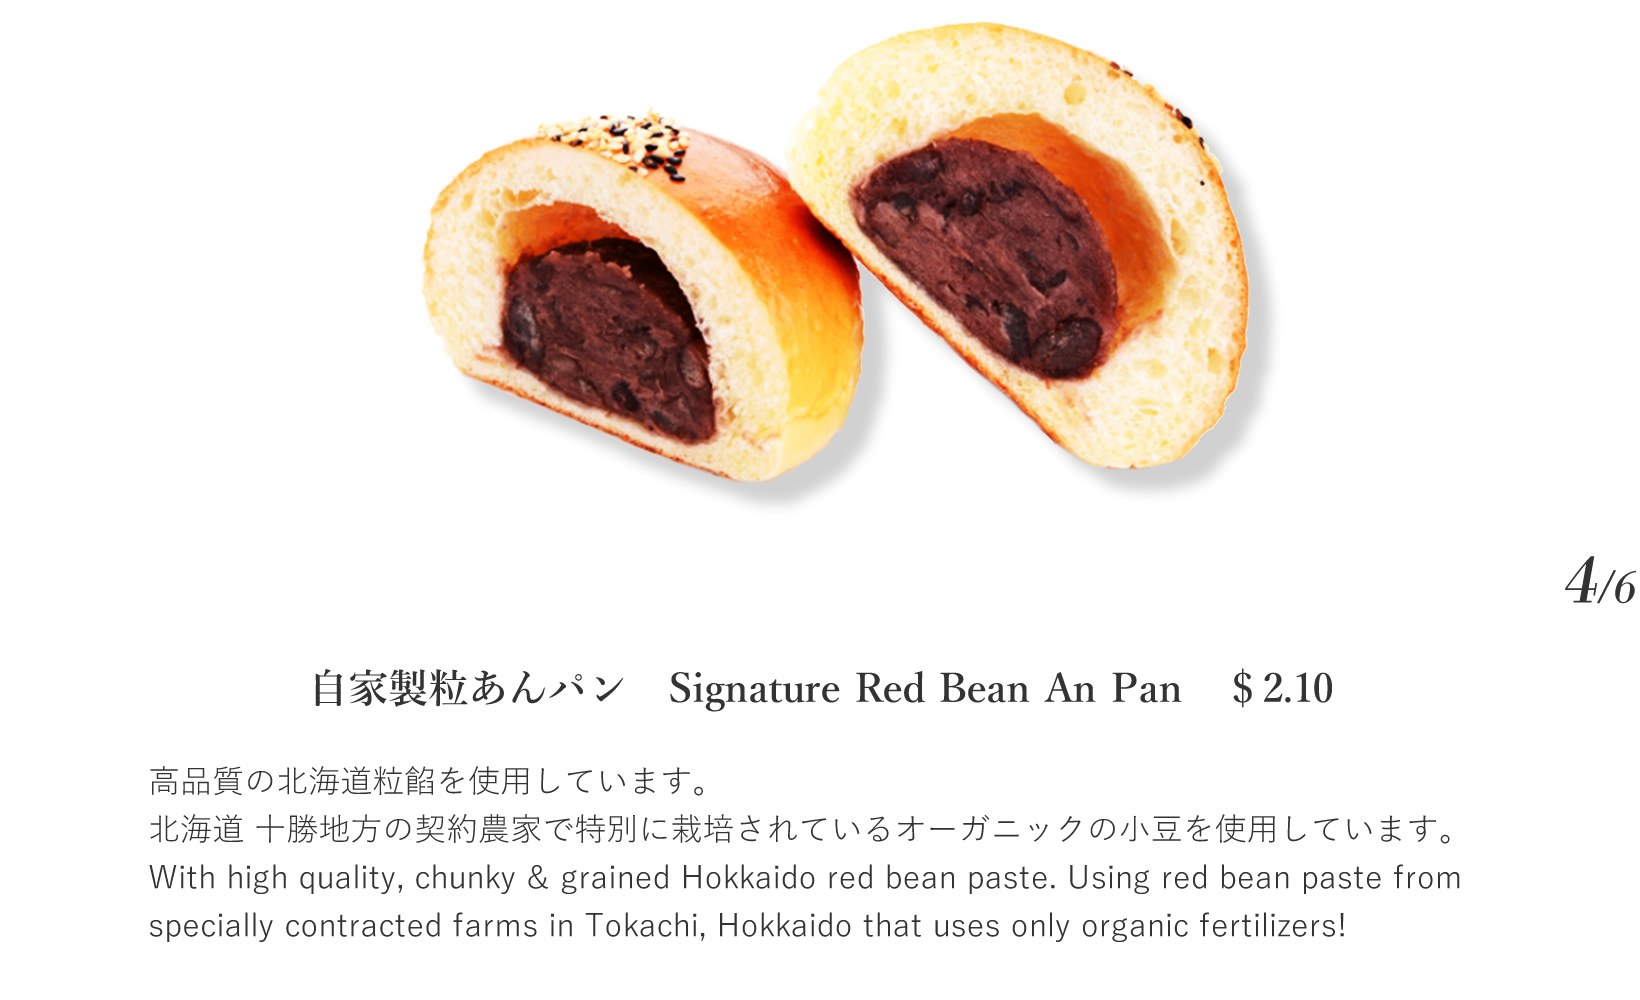 自家製粒あんパン Signature Red Bean An Pan・・・6/4